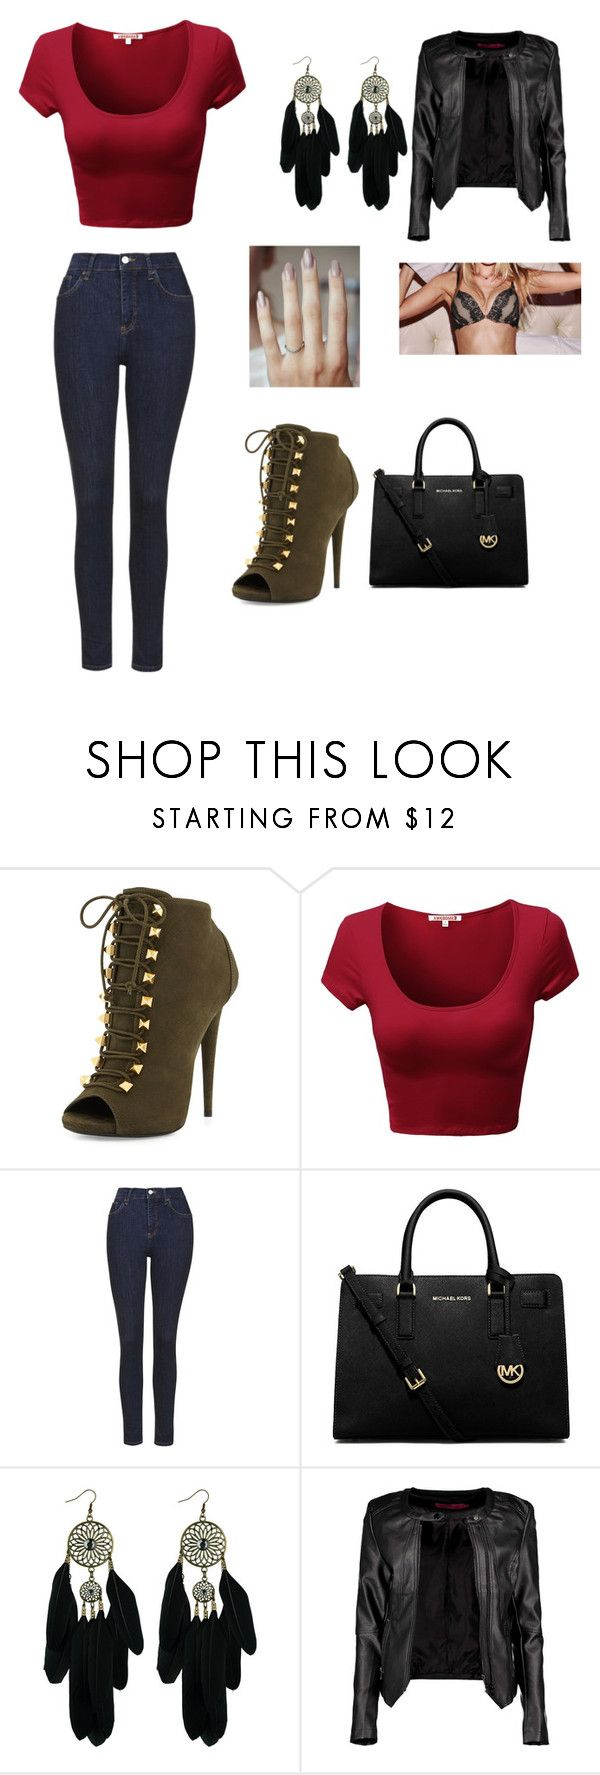 """""""with Cameron Dallas, Alex aiono, Madison beer,  Andrea russet, and Crawford Collins"""" by slayyeettia ❤ liked on Polyvore featuring Giuseppe Zanotti, Topshop, MICHAEL Michael Kors, Boohoo, BOMBSHELL, women's clothing, women's fashion, women, female and woman"""